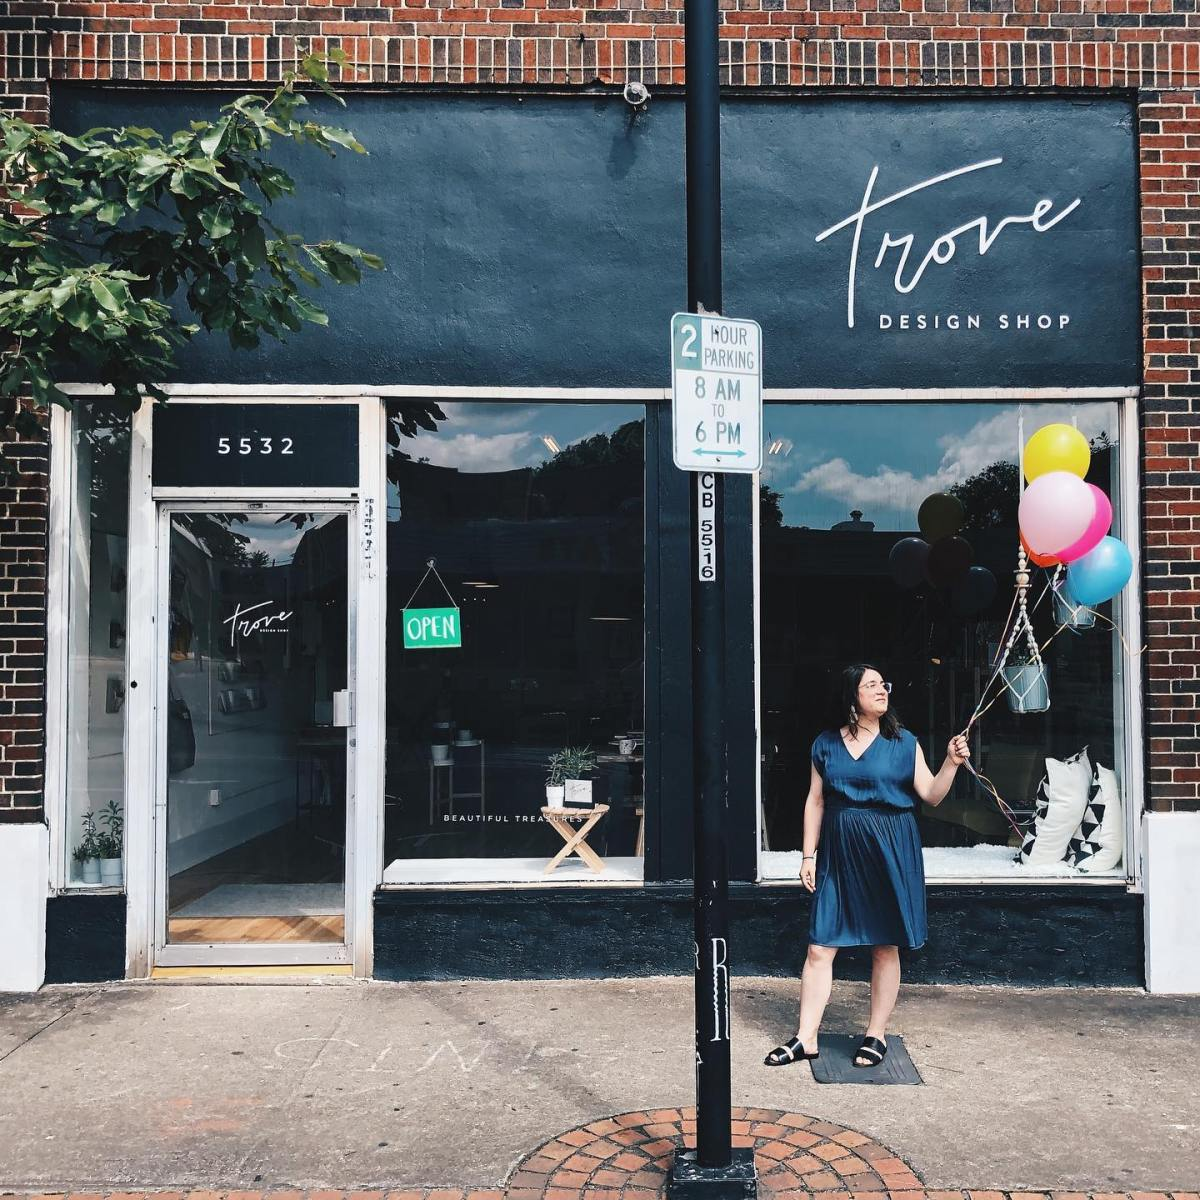 5 reasons not to miss Trove's Grand Opening this Saturday in Woodlawn. Hint: massage is one of them.